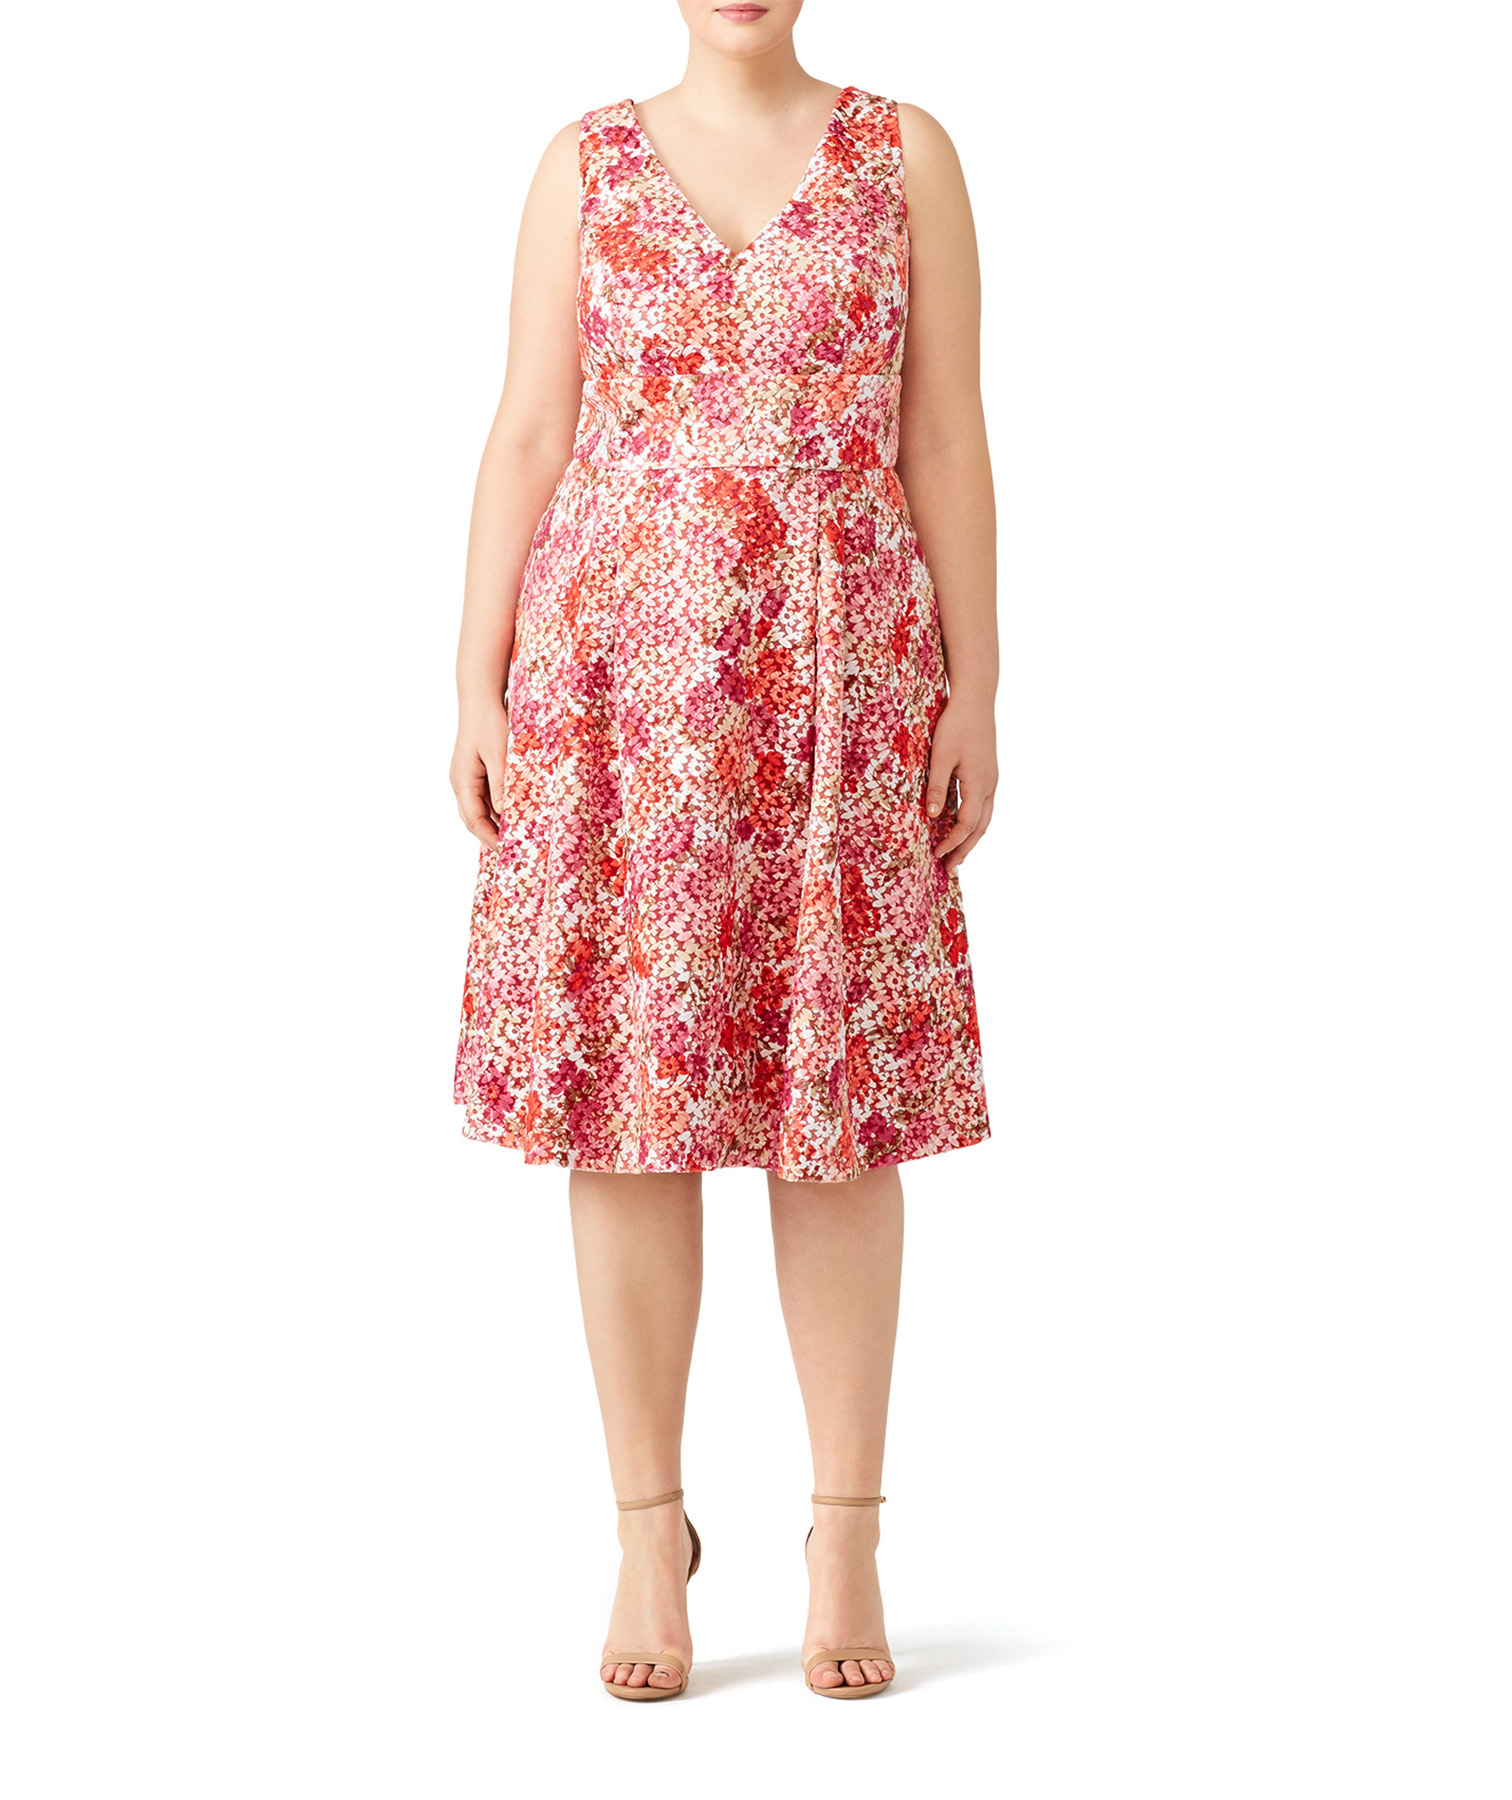 ML Monique Lhuillier Pink Floral Dress on model